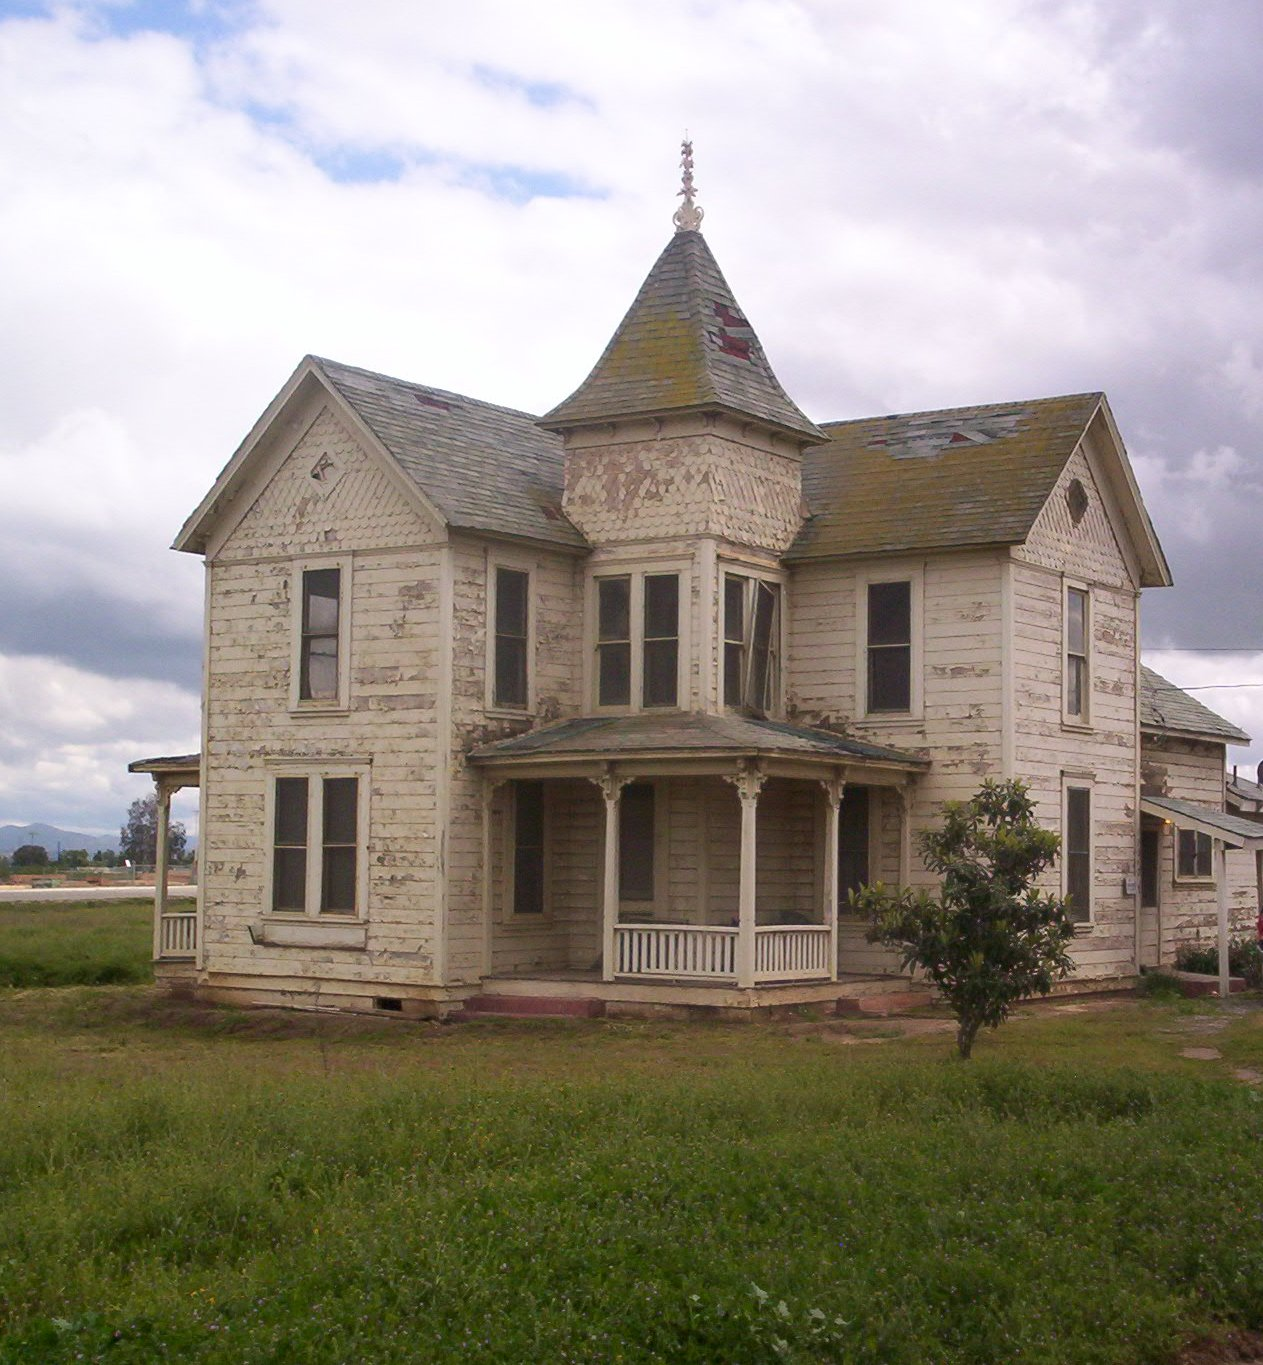 Victorian House Outside Of Perris Ca Flickr Photo